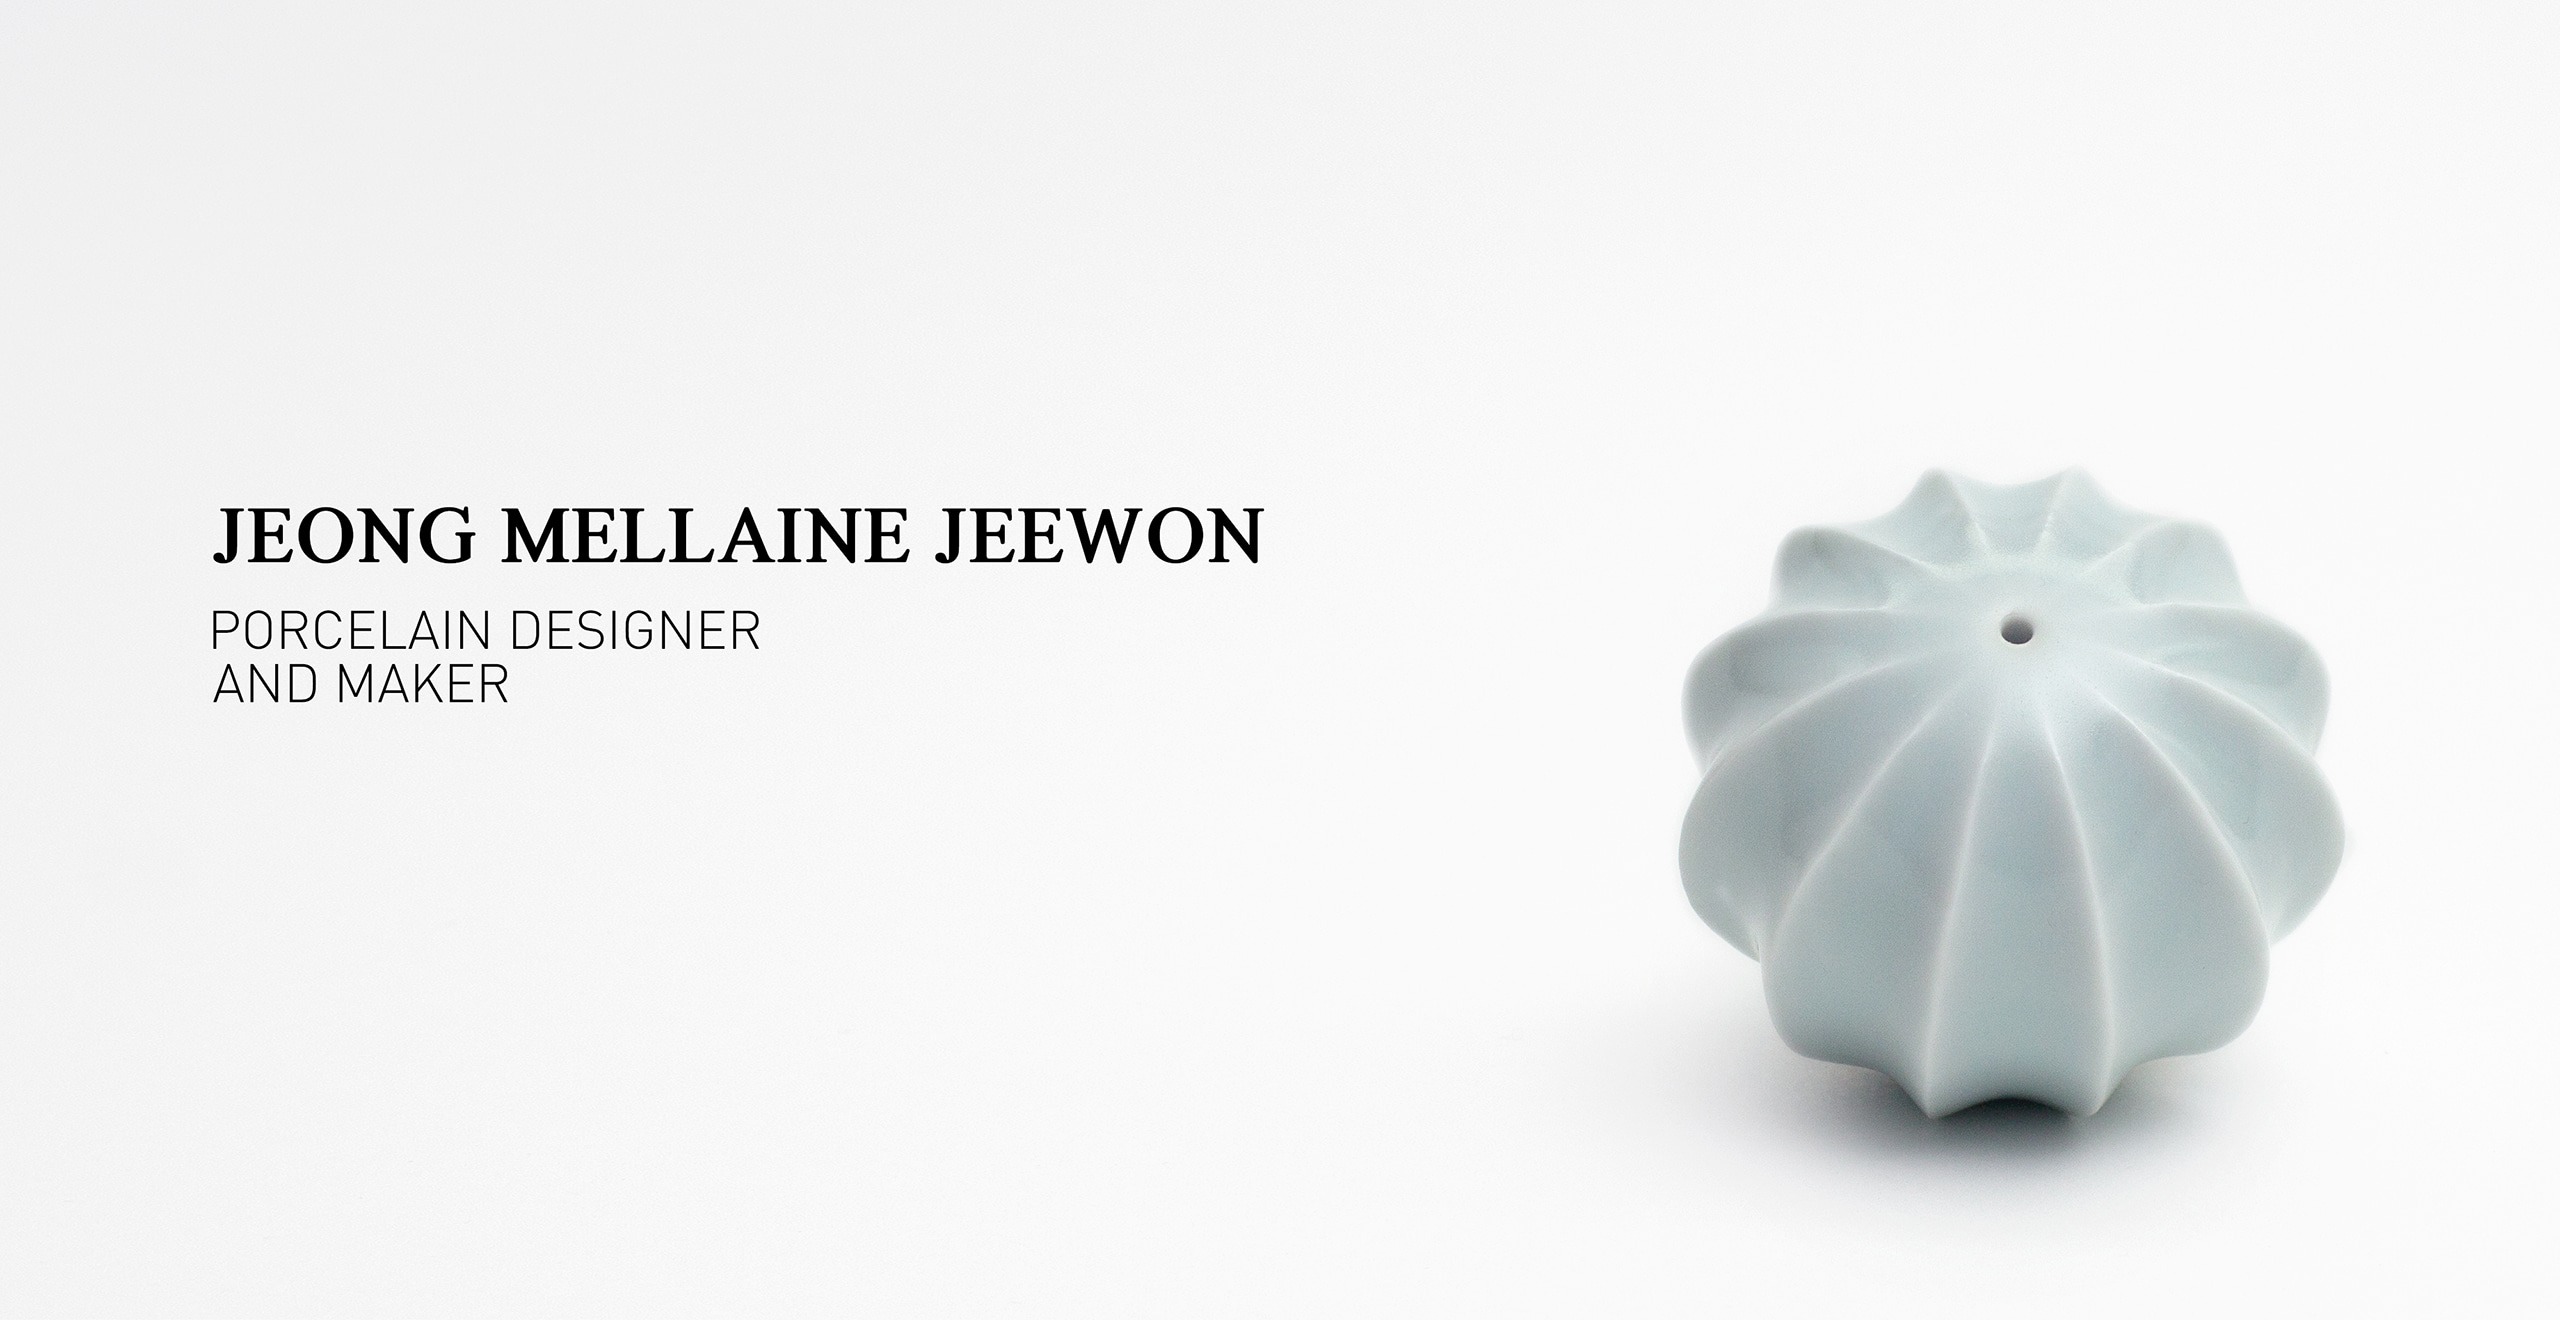 Jeong Mellaine Jeewon